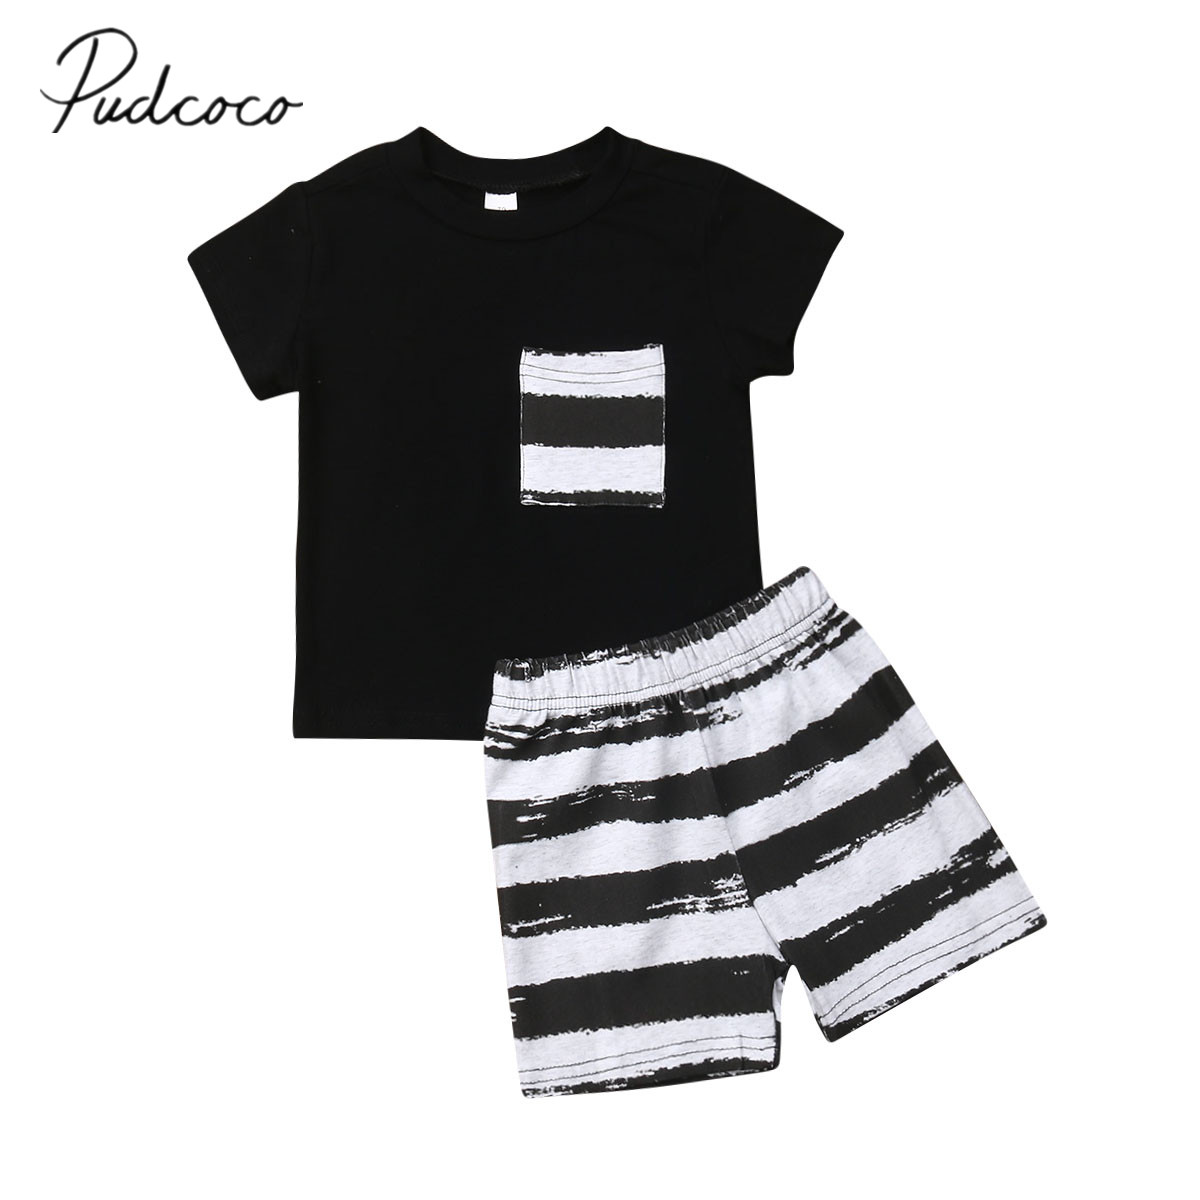 2019 Brand New Toddler Kid Baby Boys' Summer Clothes Pocket T-Shirt Tops+Short Pants Striped Casual Outfit Set Summer Clothing